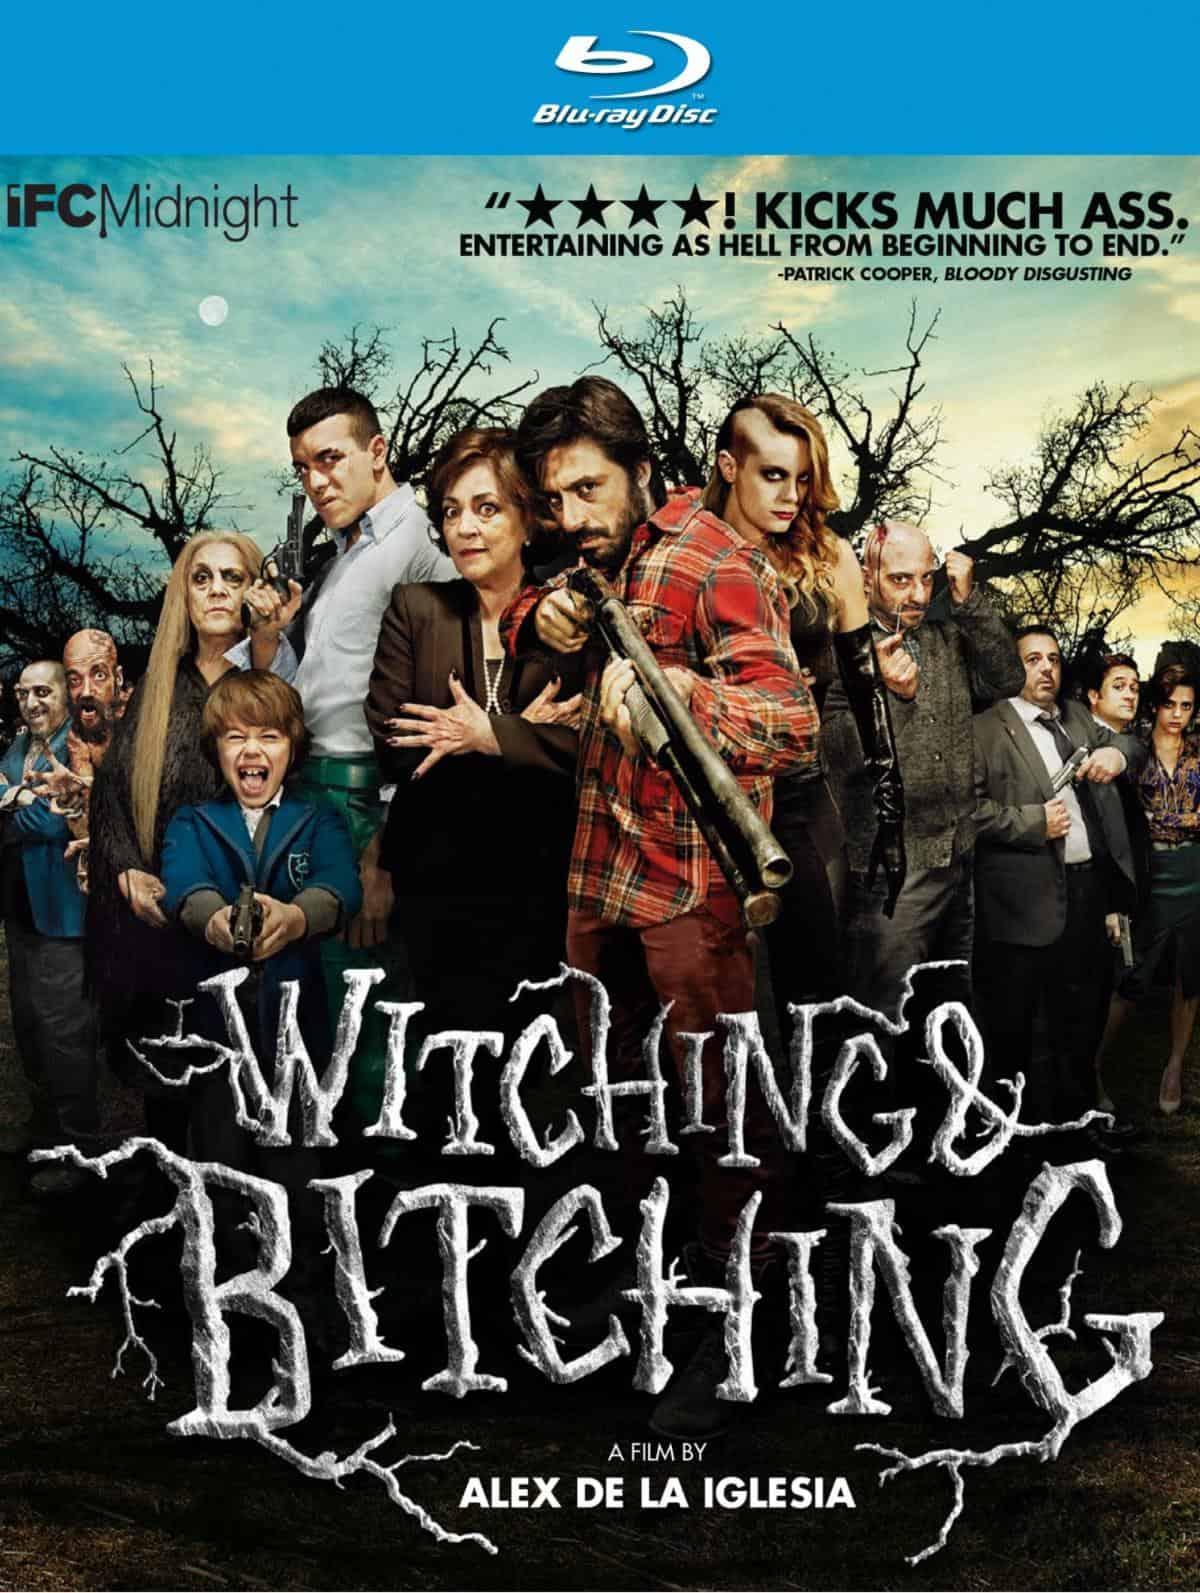 IFC Midnight announces the release of Witching and Bitching on Blu-ray on 10/5 2